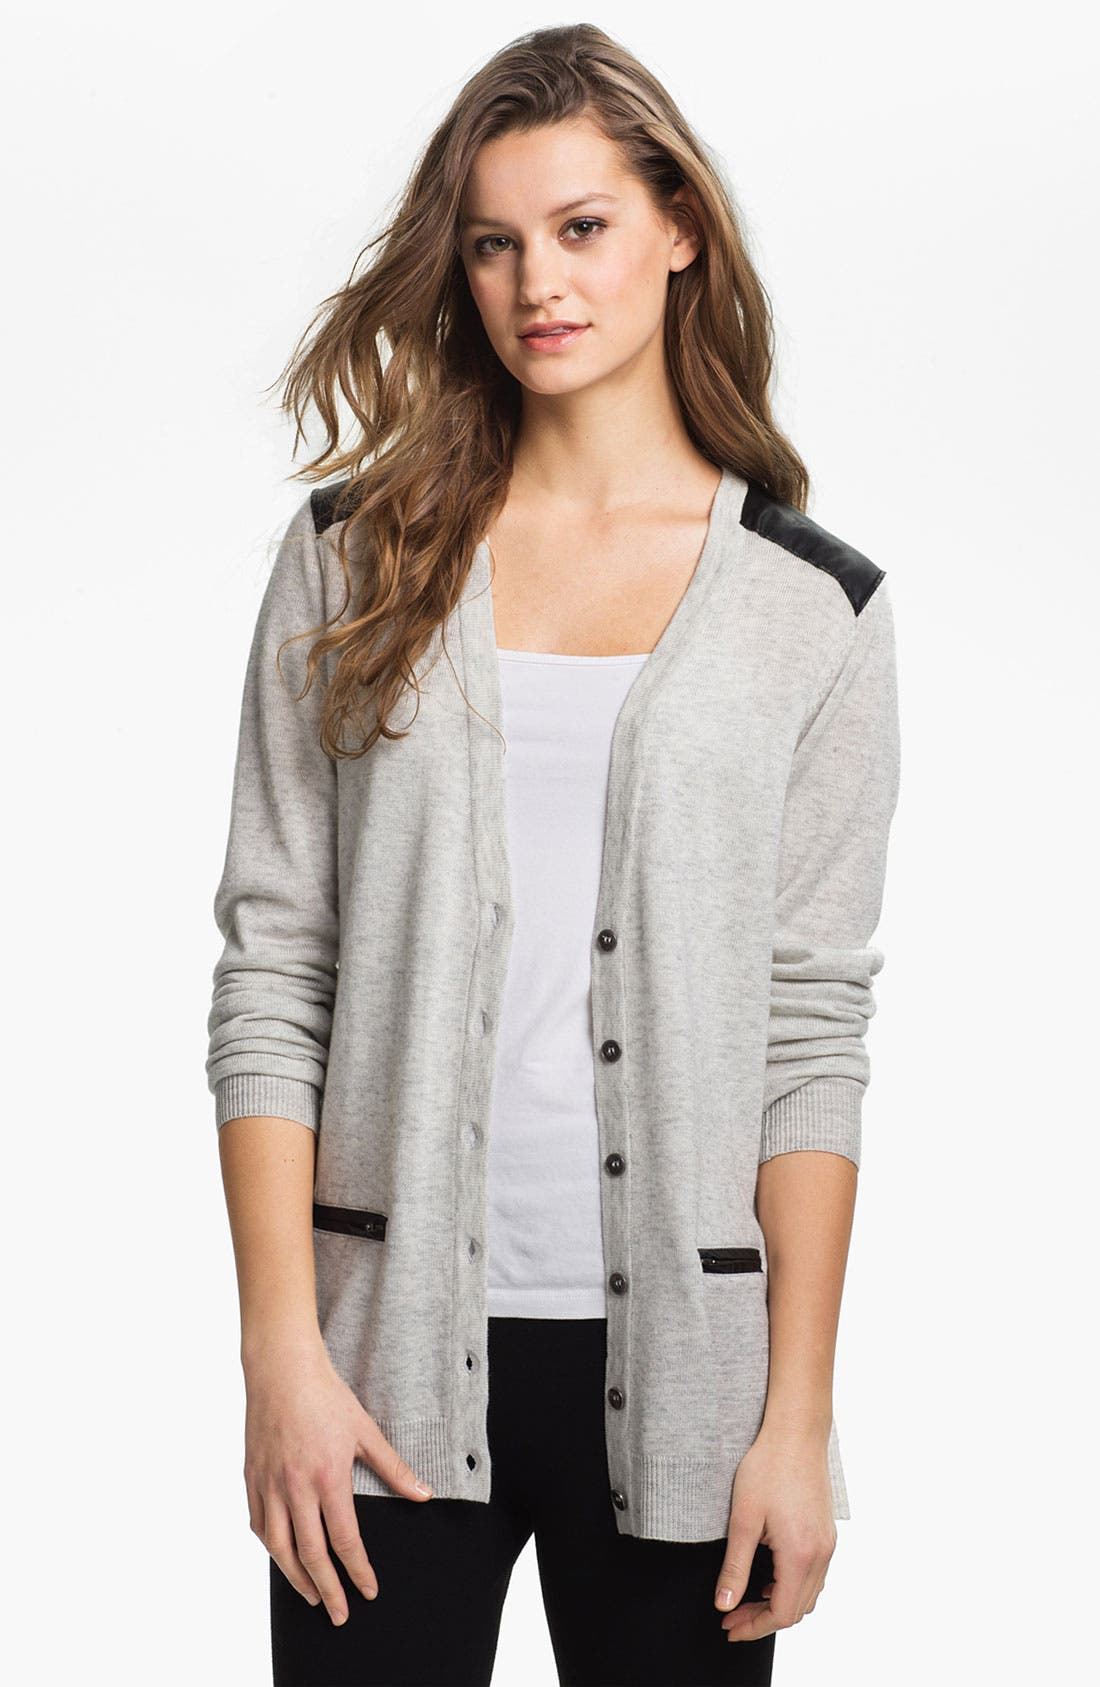 Main Image - Max & Mia Leather Trim Cardigan (Online Exclusive)